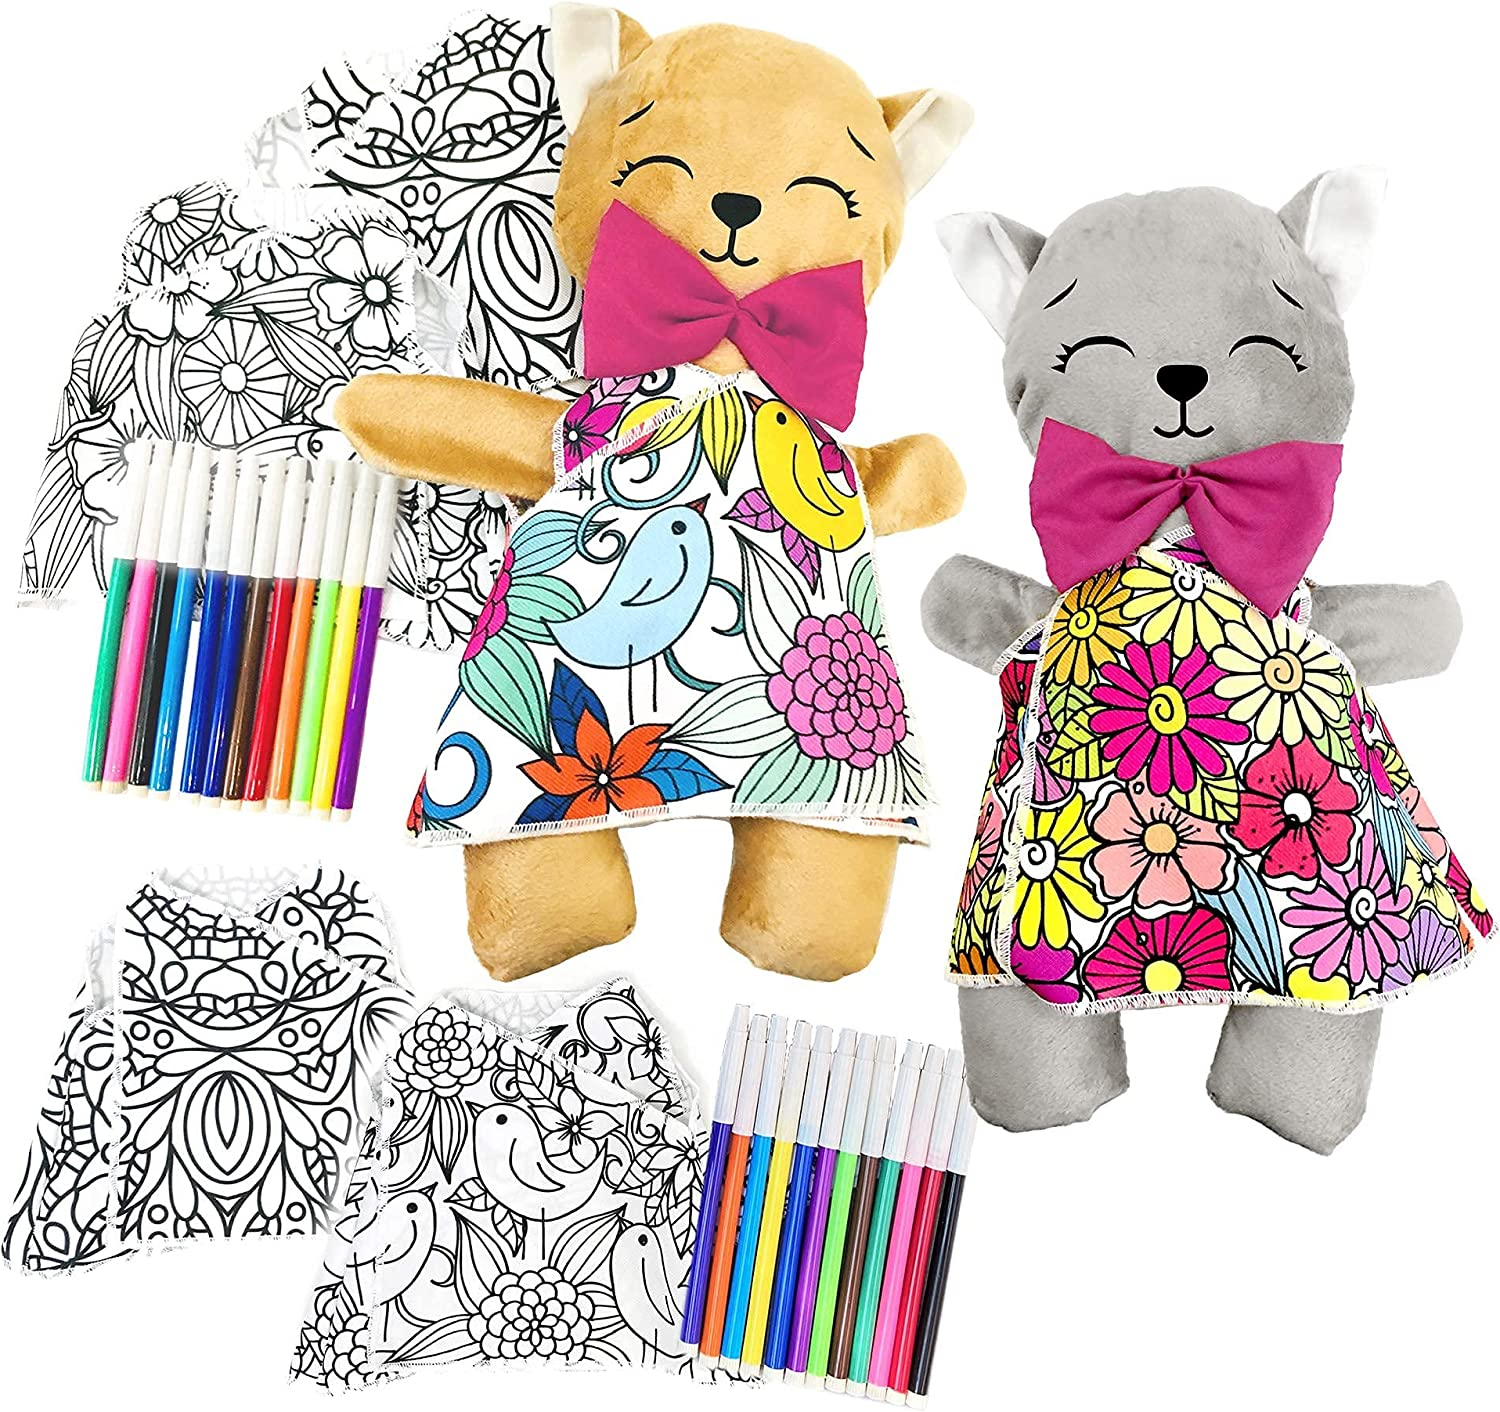 Altus 2 Kitten Ranking TOP3 Plush Interactive Toys Dr Coloring Mandala 3 with In a popularity